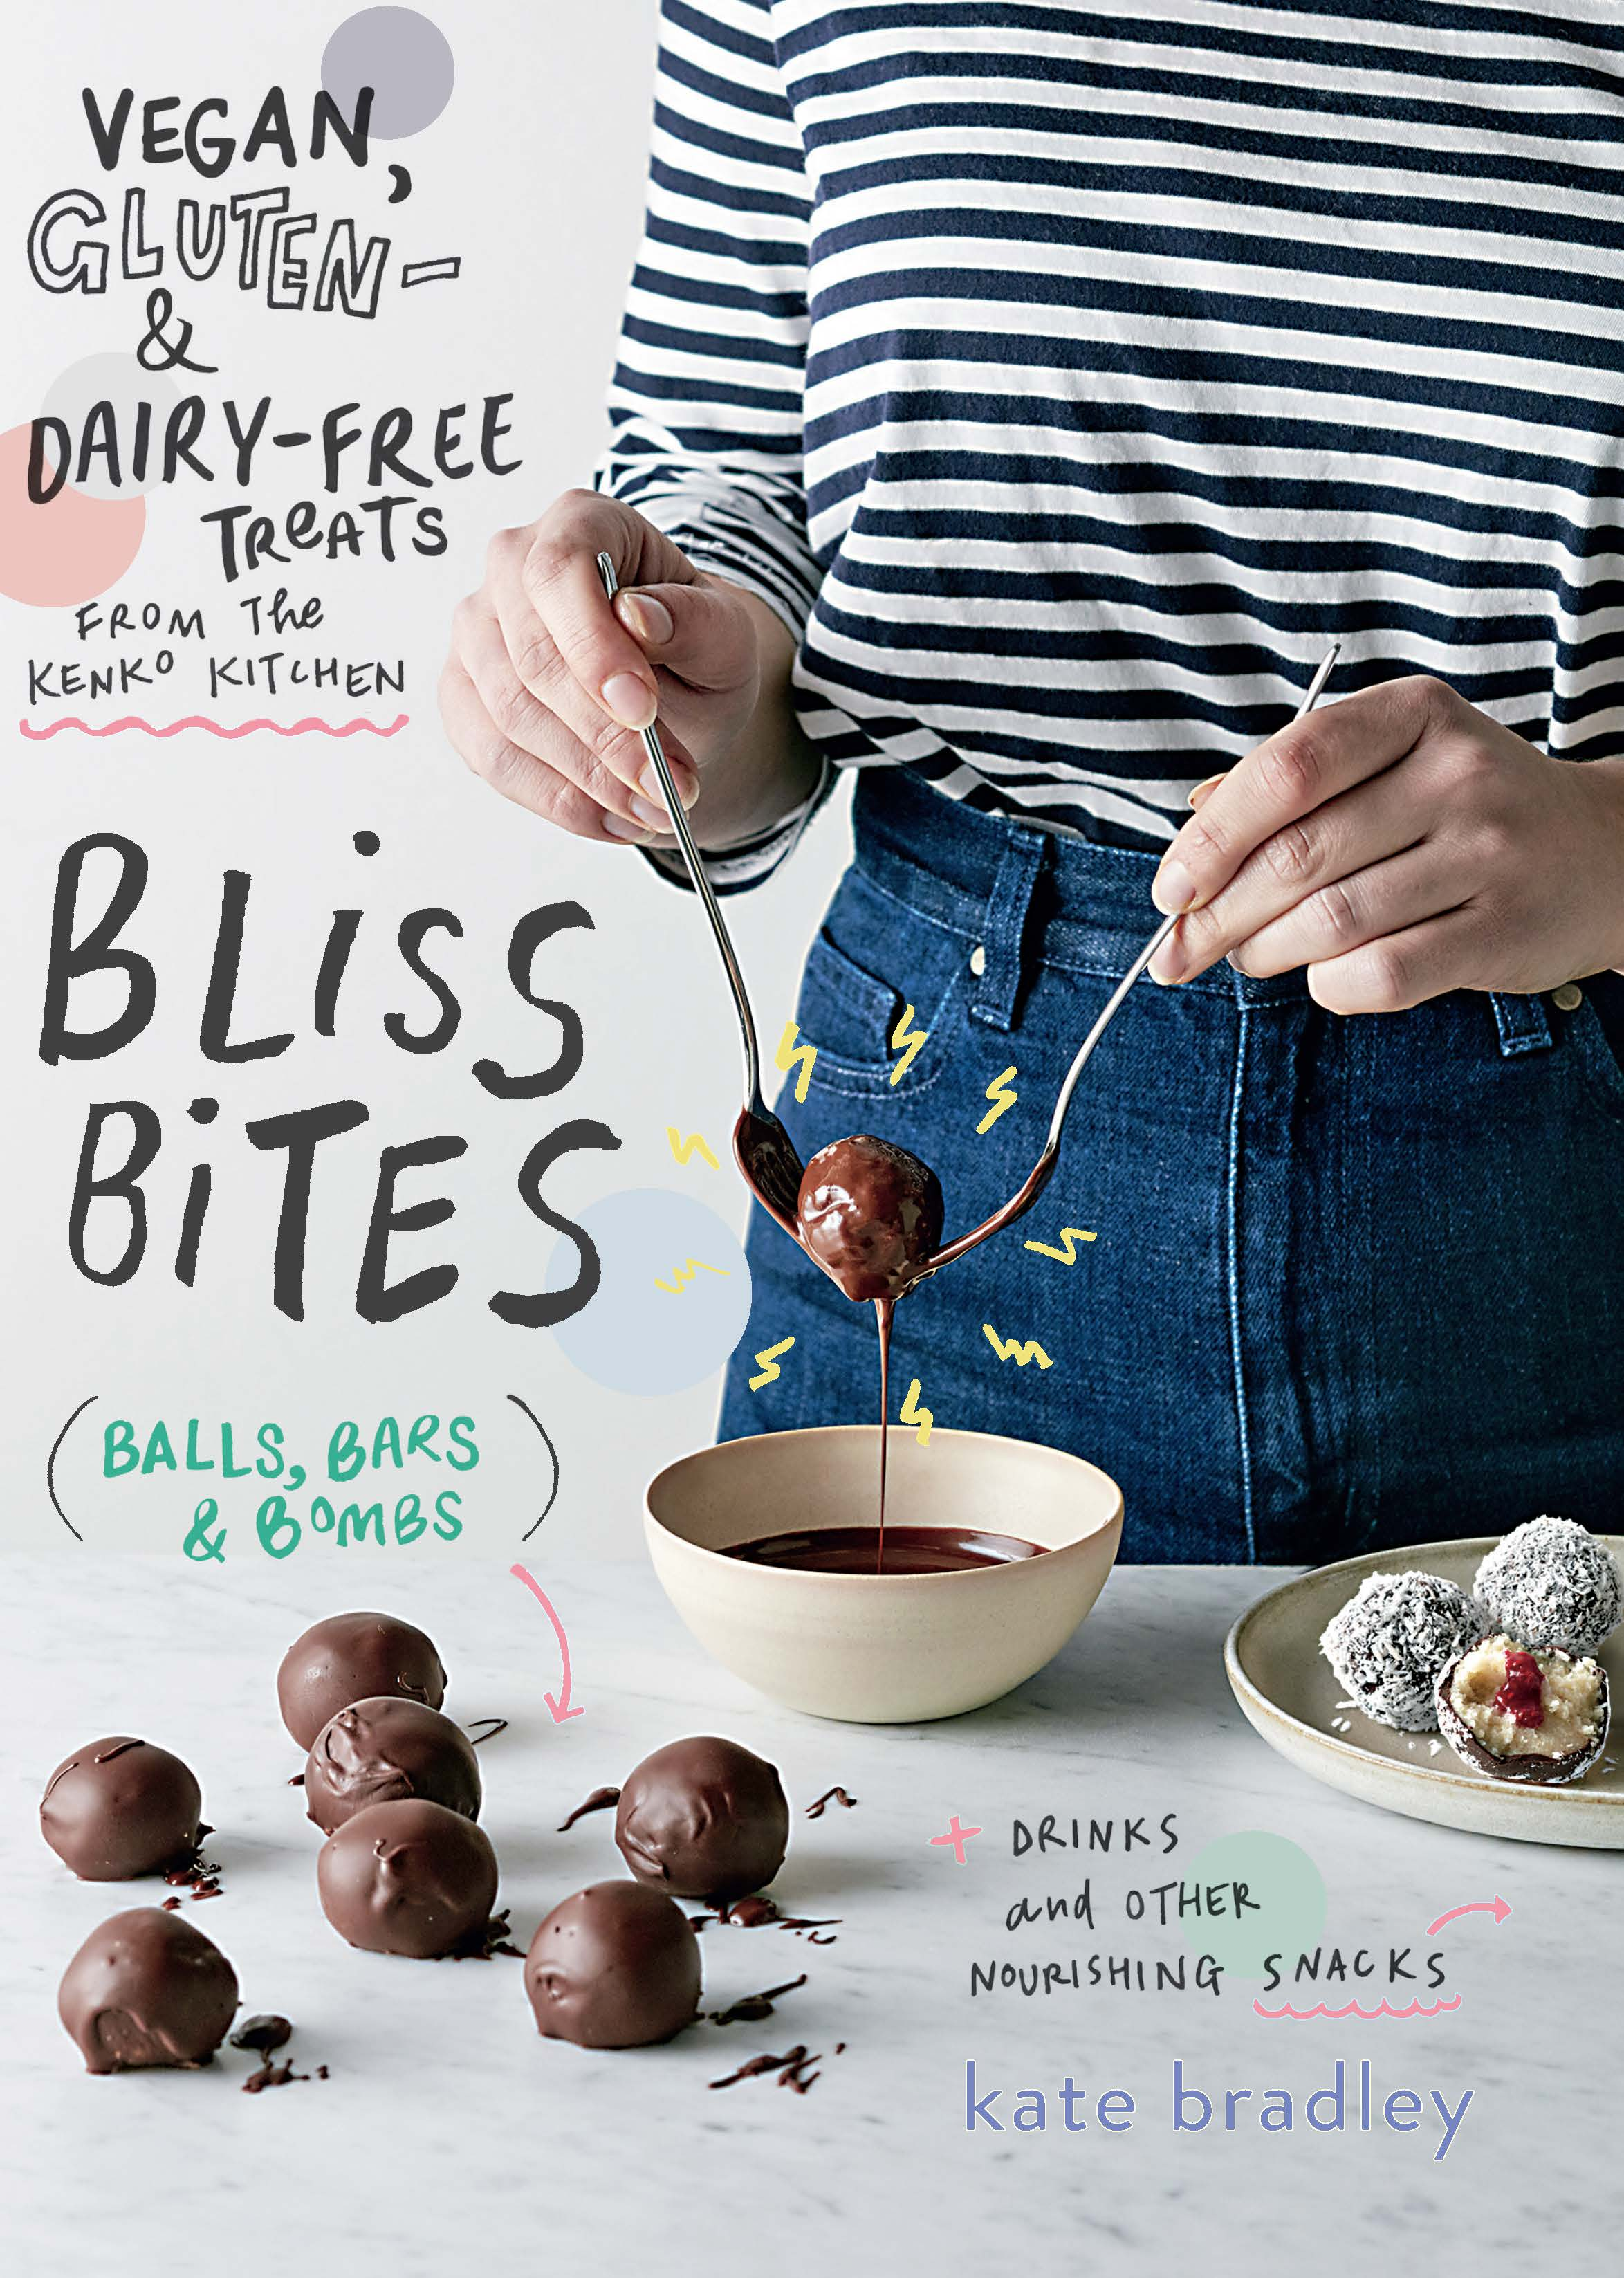 RAW CHOCOLATE BITES